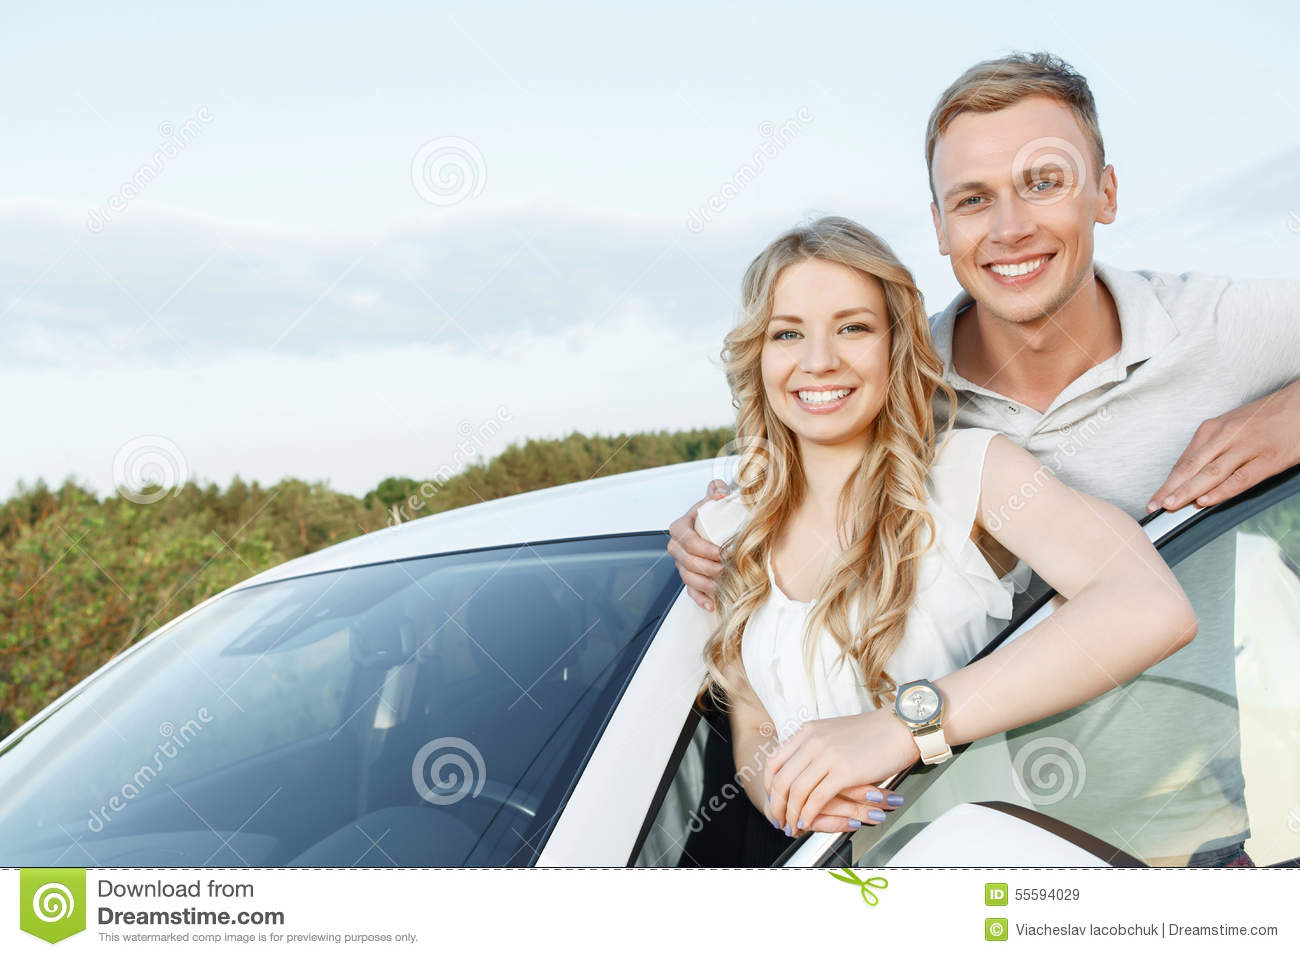 sweet couple dating standing